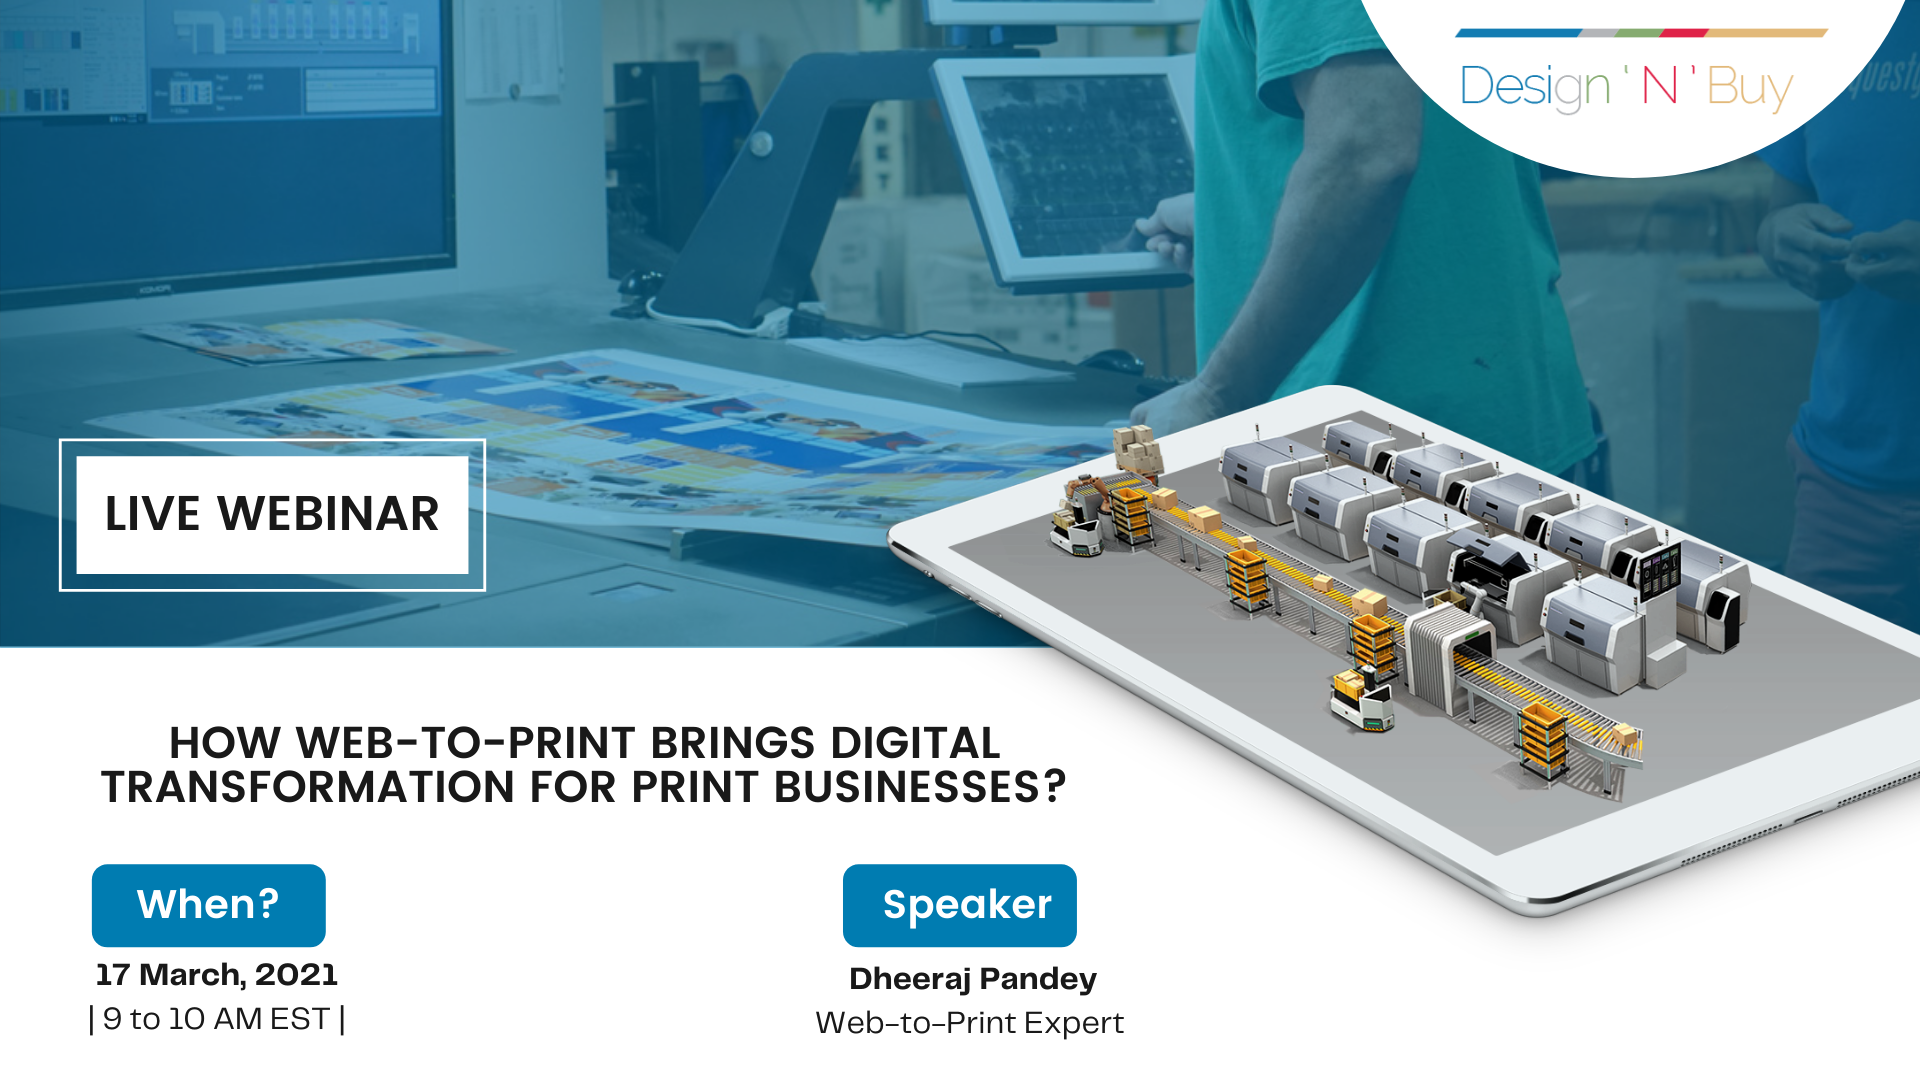 Gear Up For Our Webinar On How Web-To-Print Brings Digital Transformation for Print Businesses?